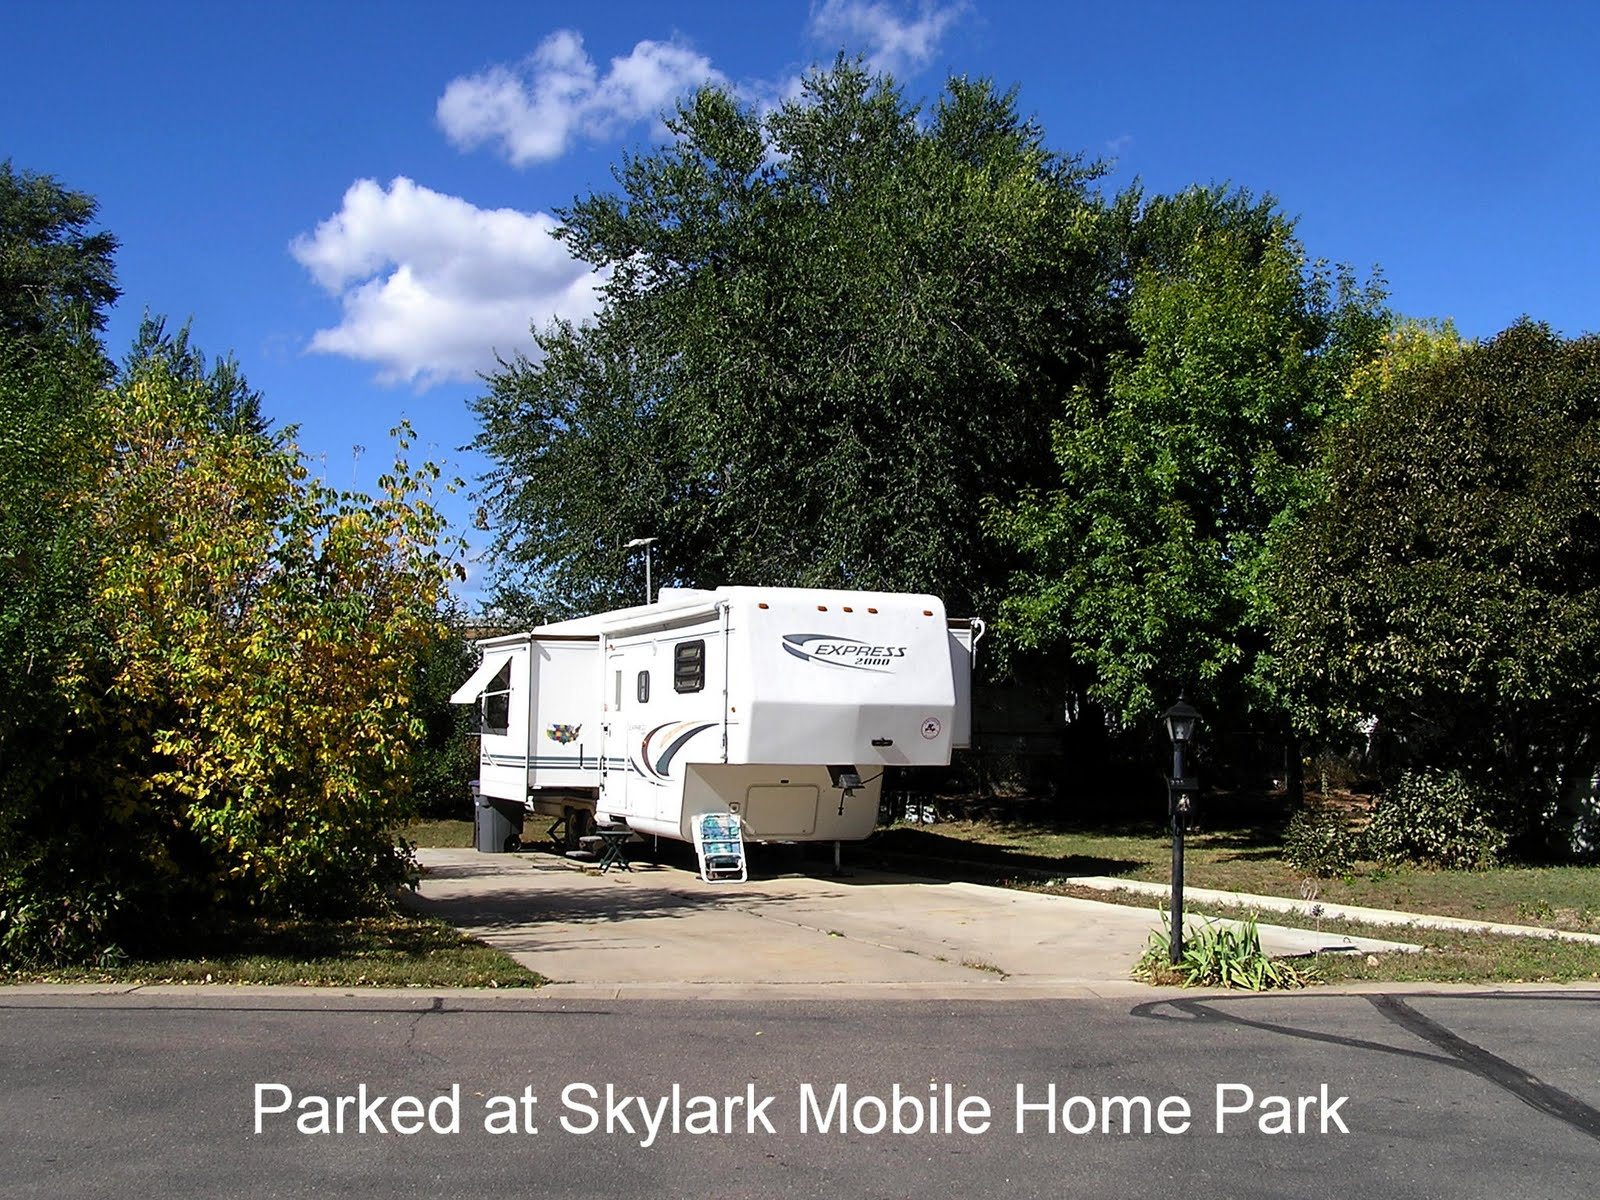 Skylark Mobile Home Park Lafayette CO Sept 26 Oct 25 This Is The Best Option We Have Found For Camping In Boulder Area Hopefully It Will Continue